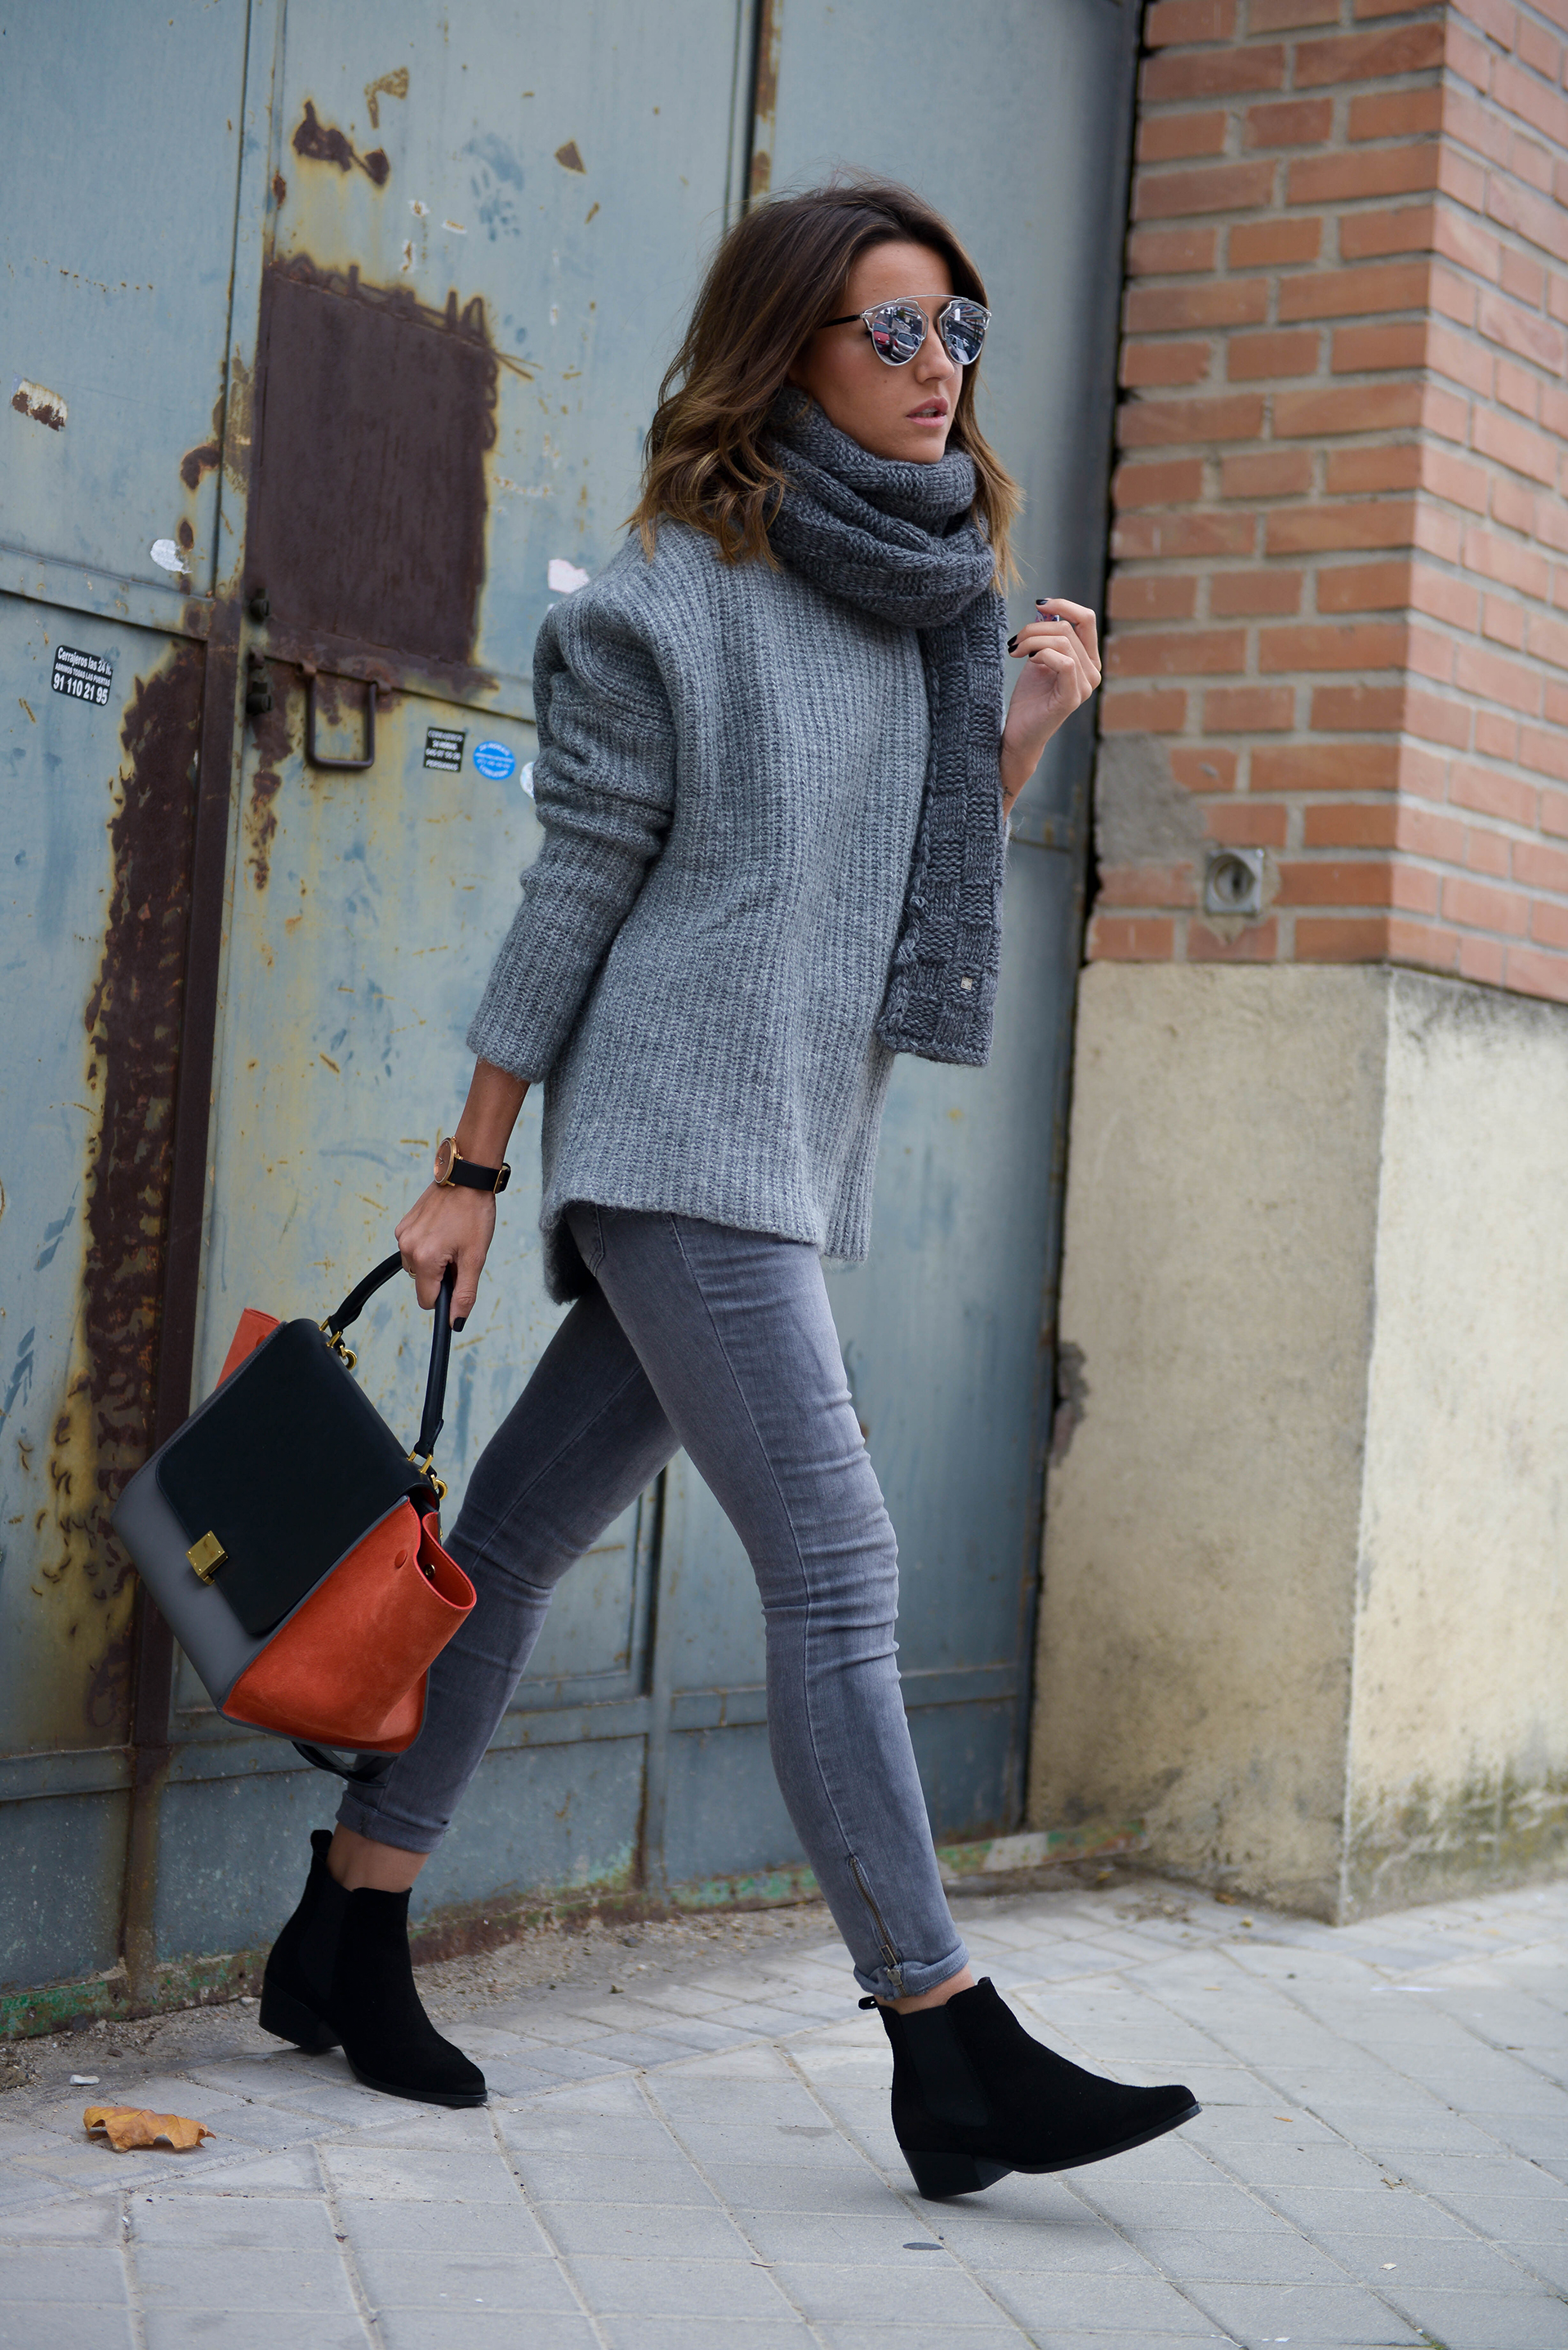 Matching varying tones of grey can really enhance your everyday look. Alexandra Pereira wears a dark scarf with a paler knitted sweater and looks totally ready for work or play. Jeans: Anine Bing, Sweater: Zara, Bag: Celine, Boots: Ulanka.